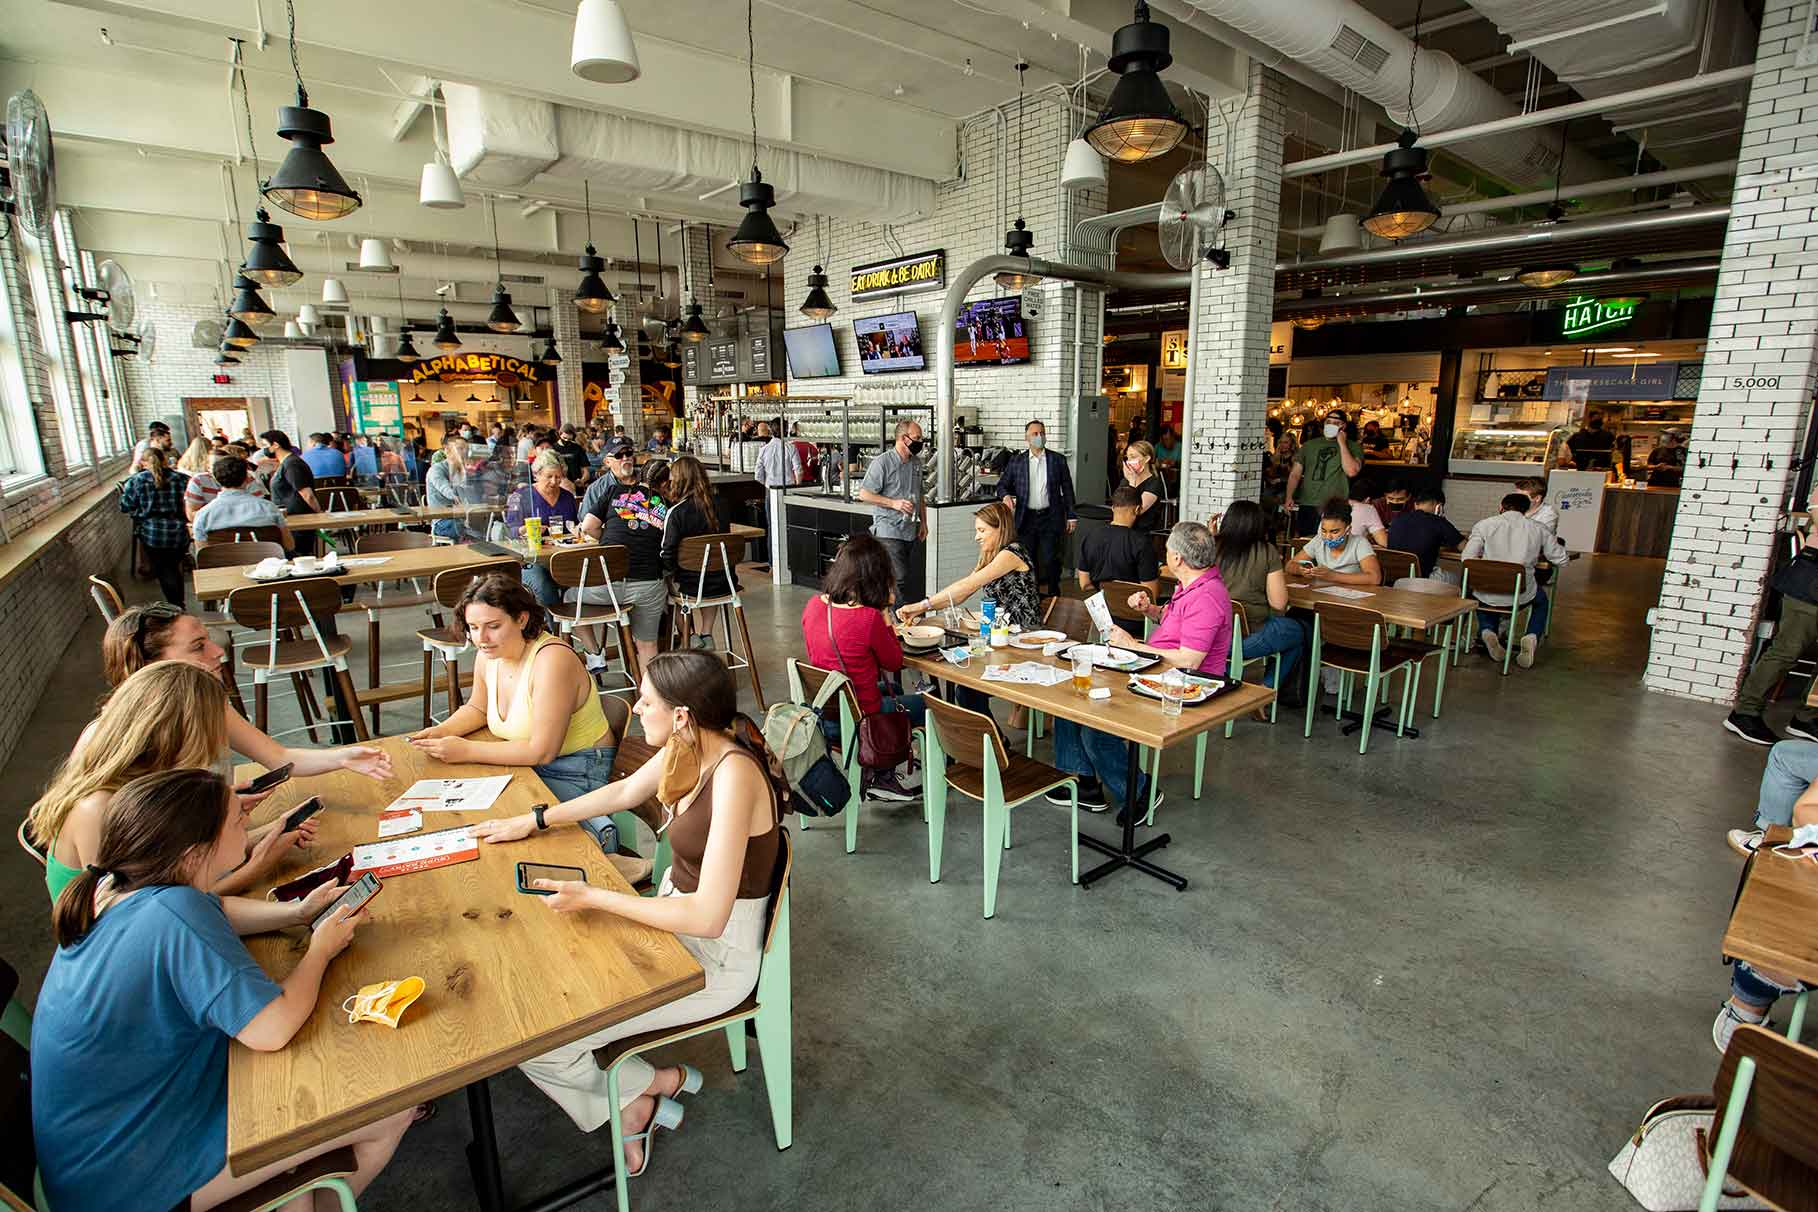 Diners seated at wooden tables inside open air food hall.